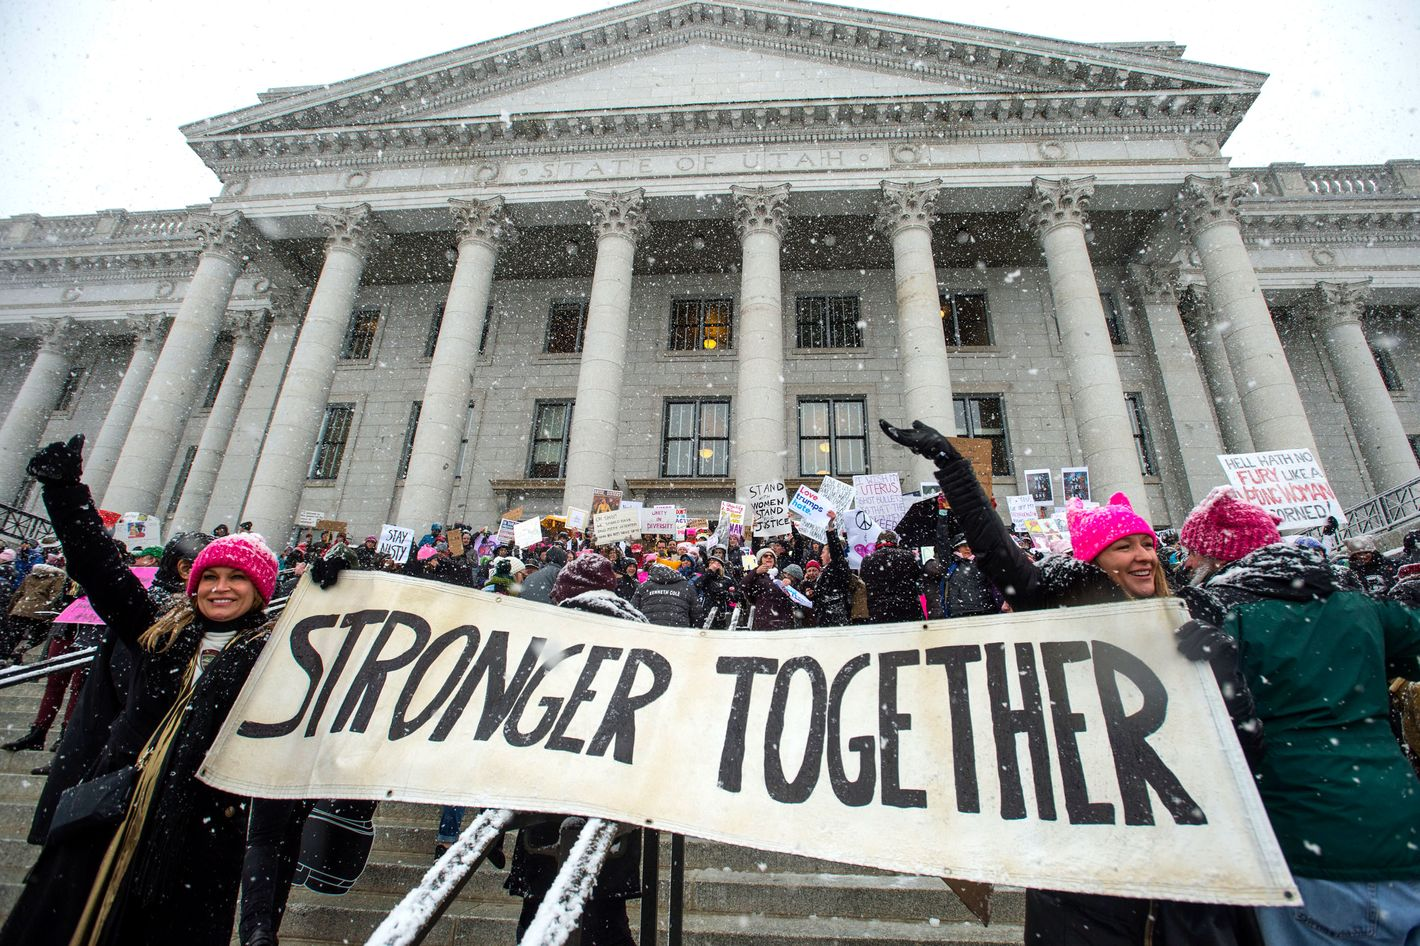 Thousands of Women Marched on the Utah Capitol Building